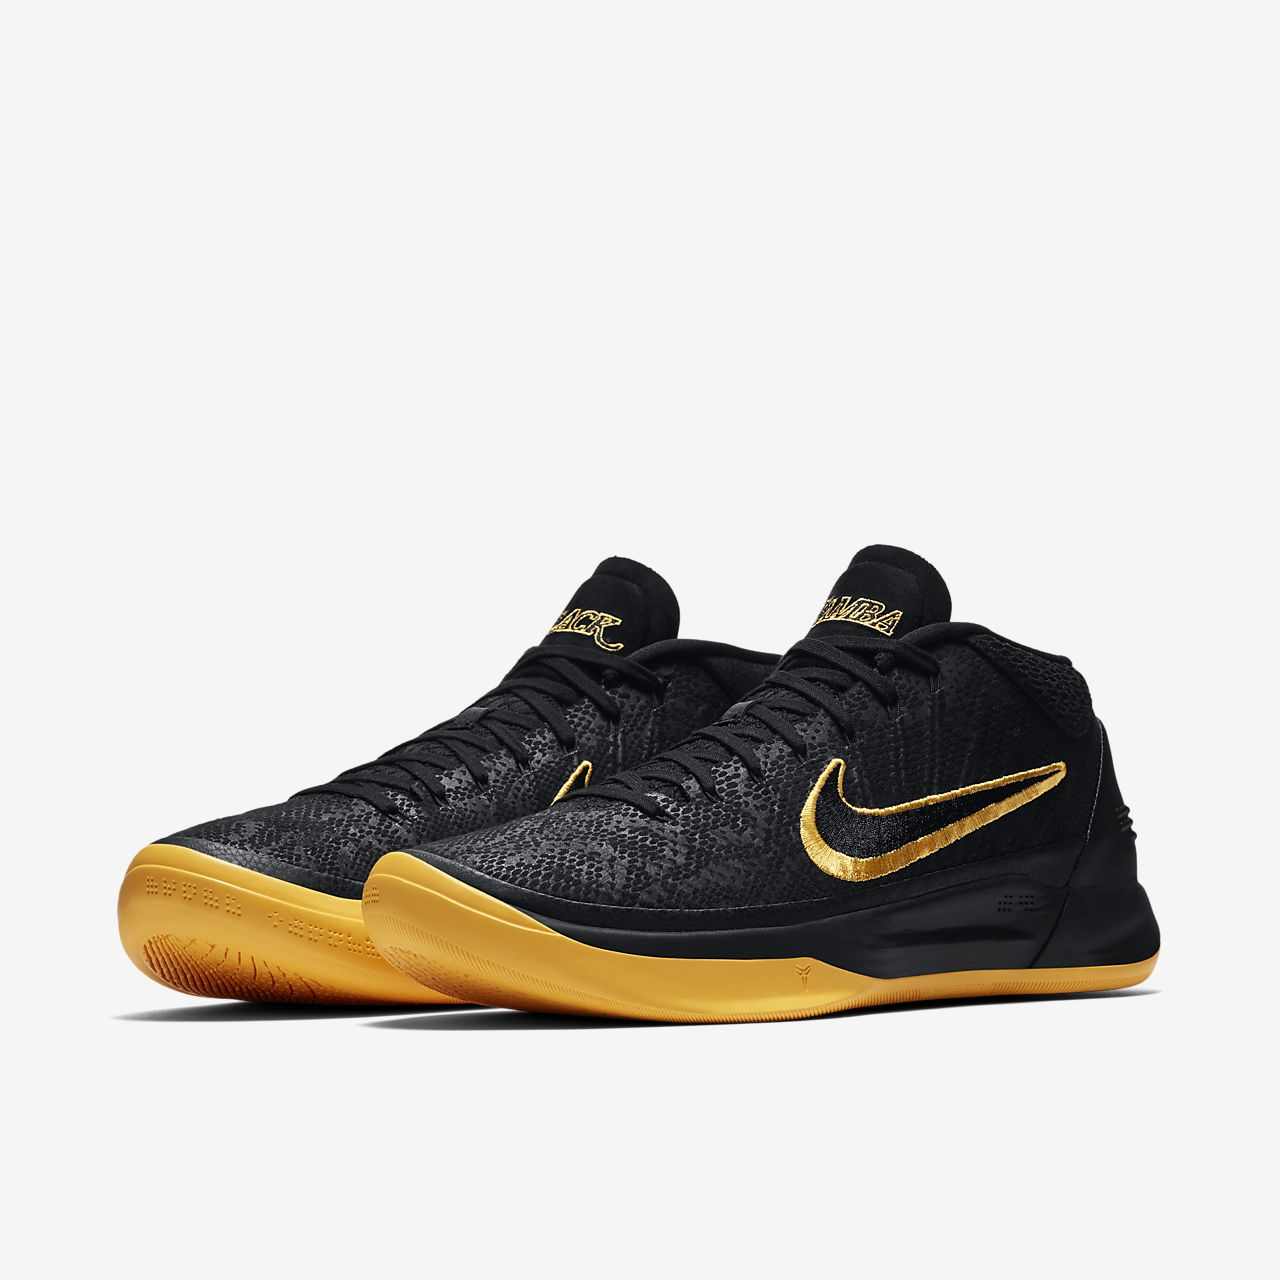 Nike Kobe AD Black Mamba Mens Basketball Shoe